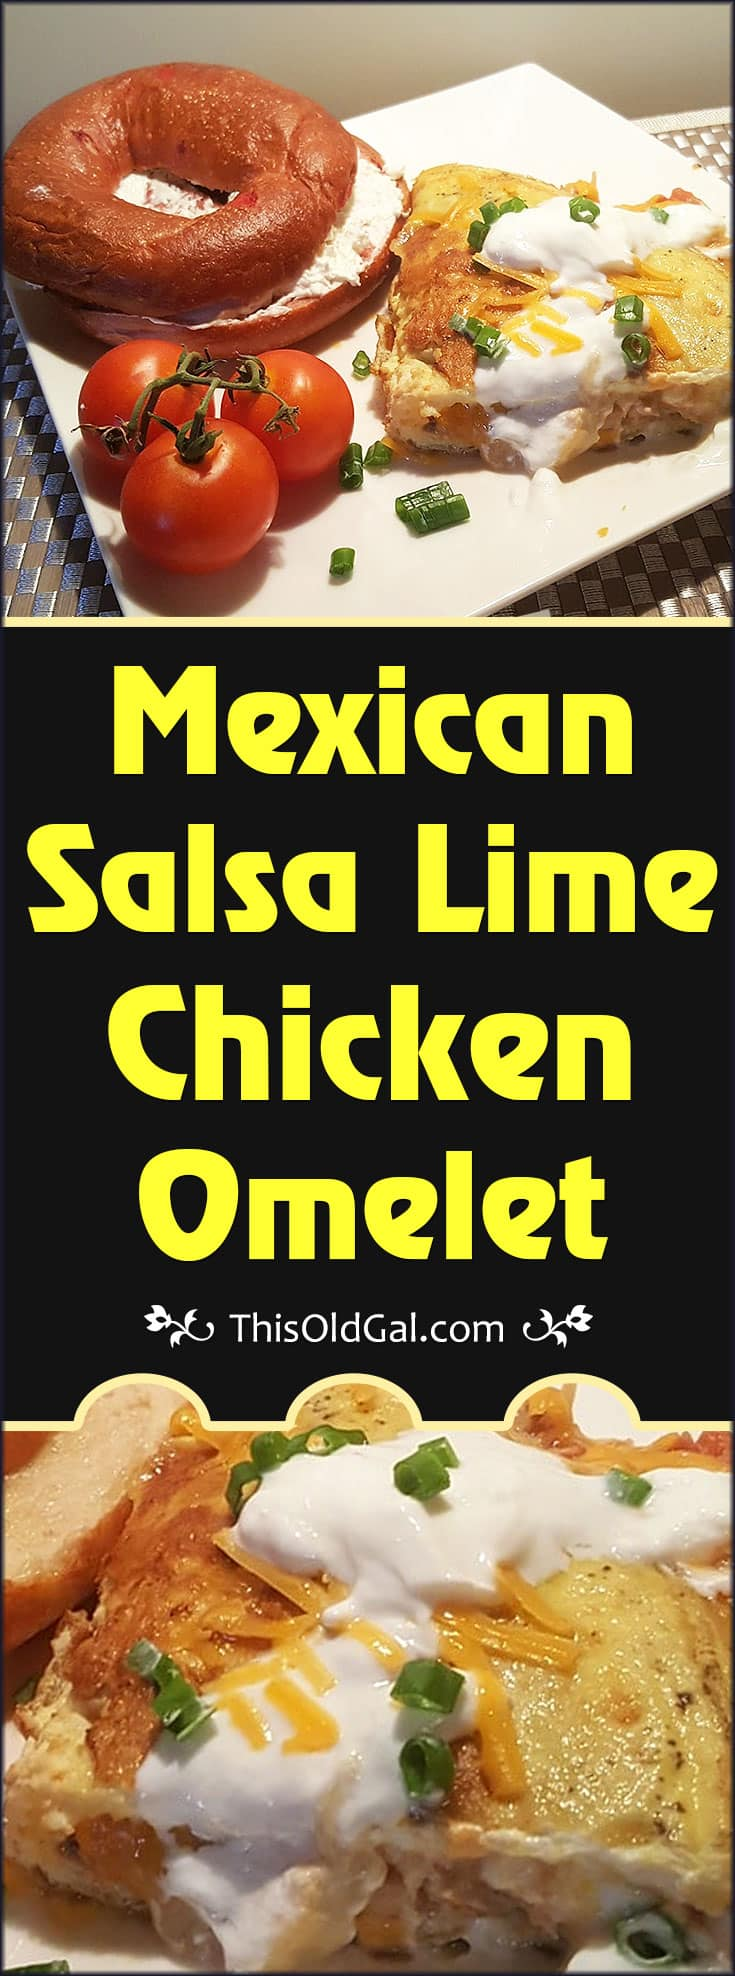 Mexican Salsa Lime Chicken Omelet Recipe